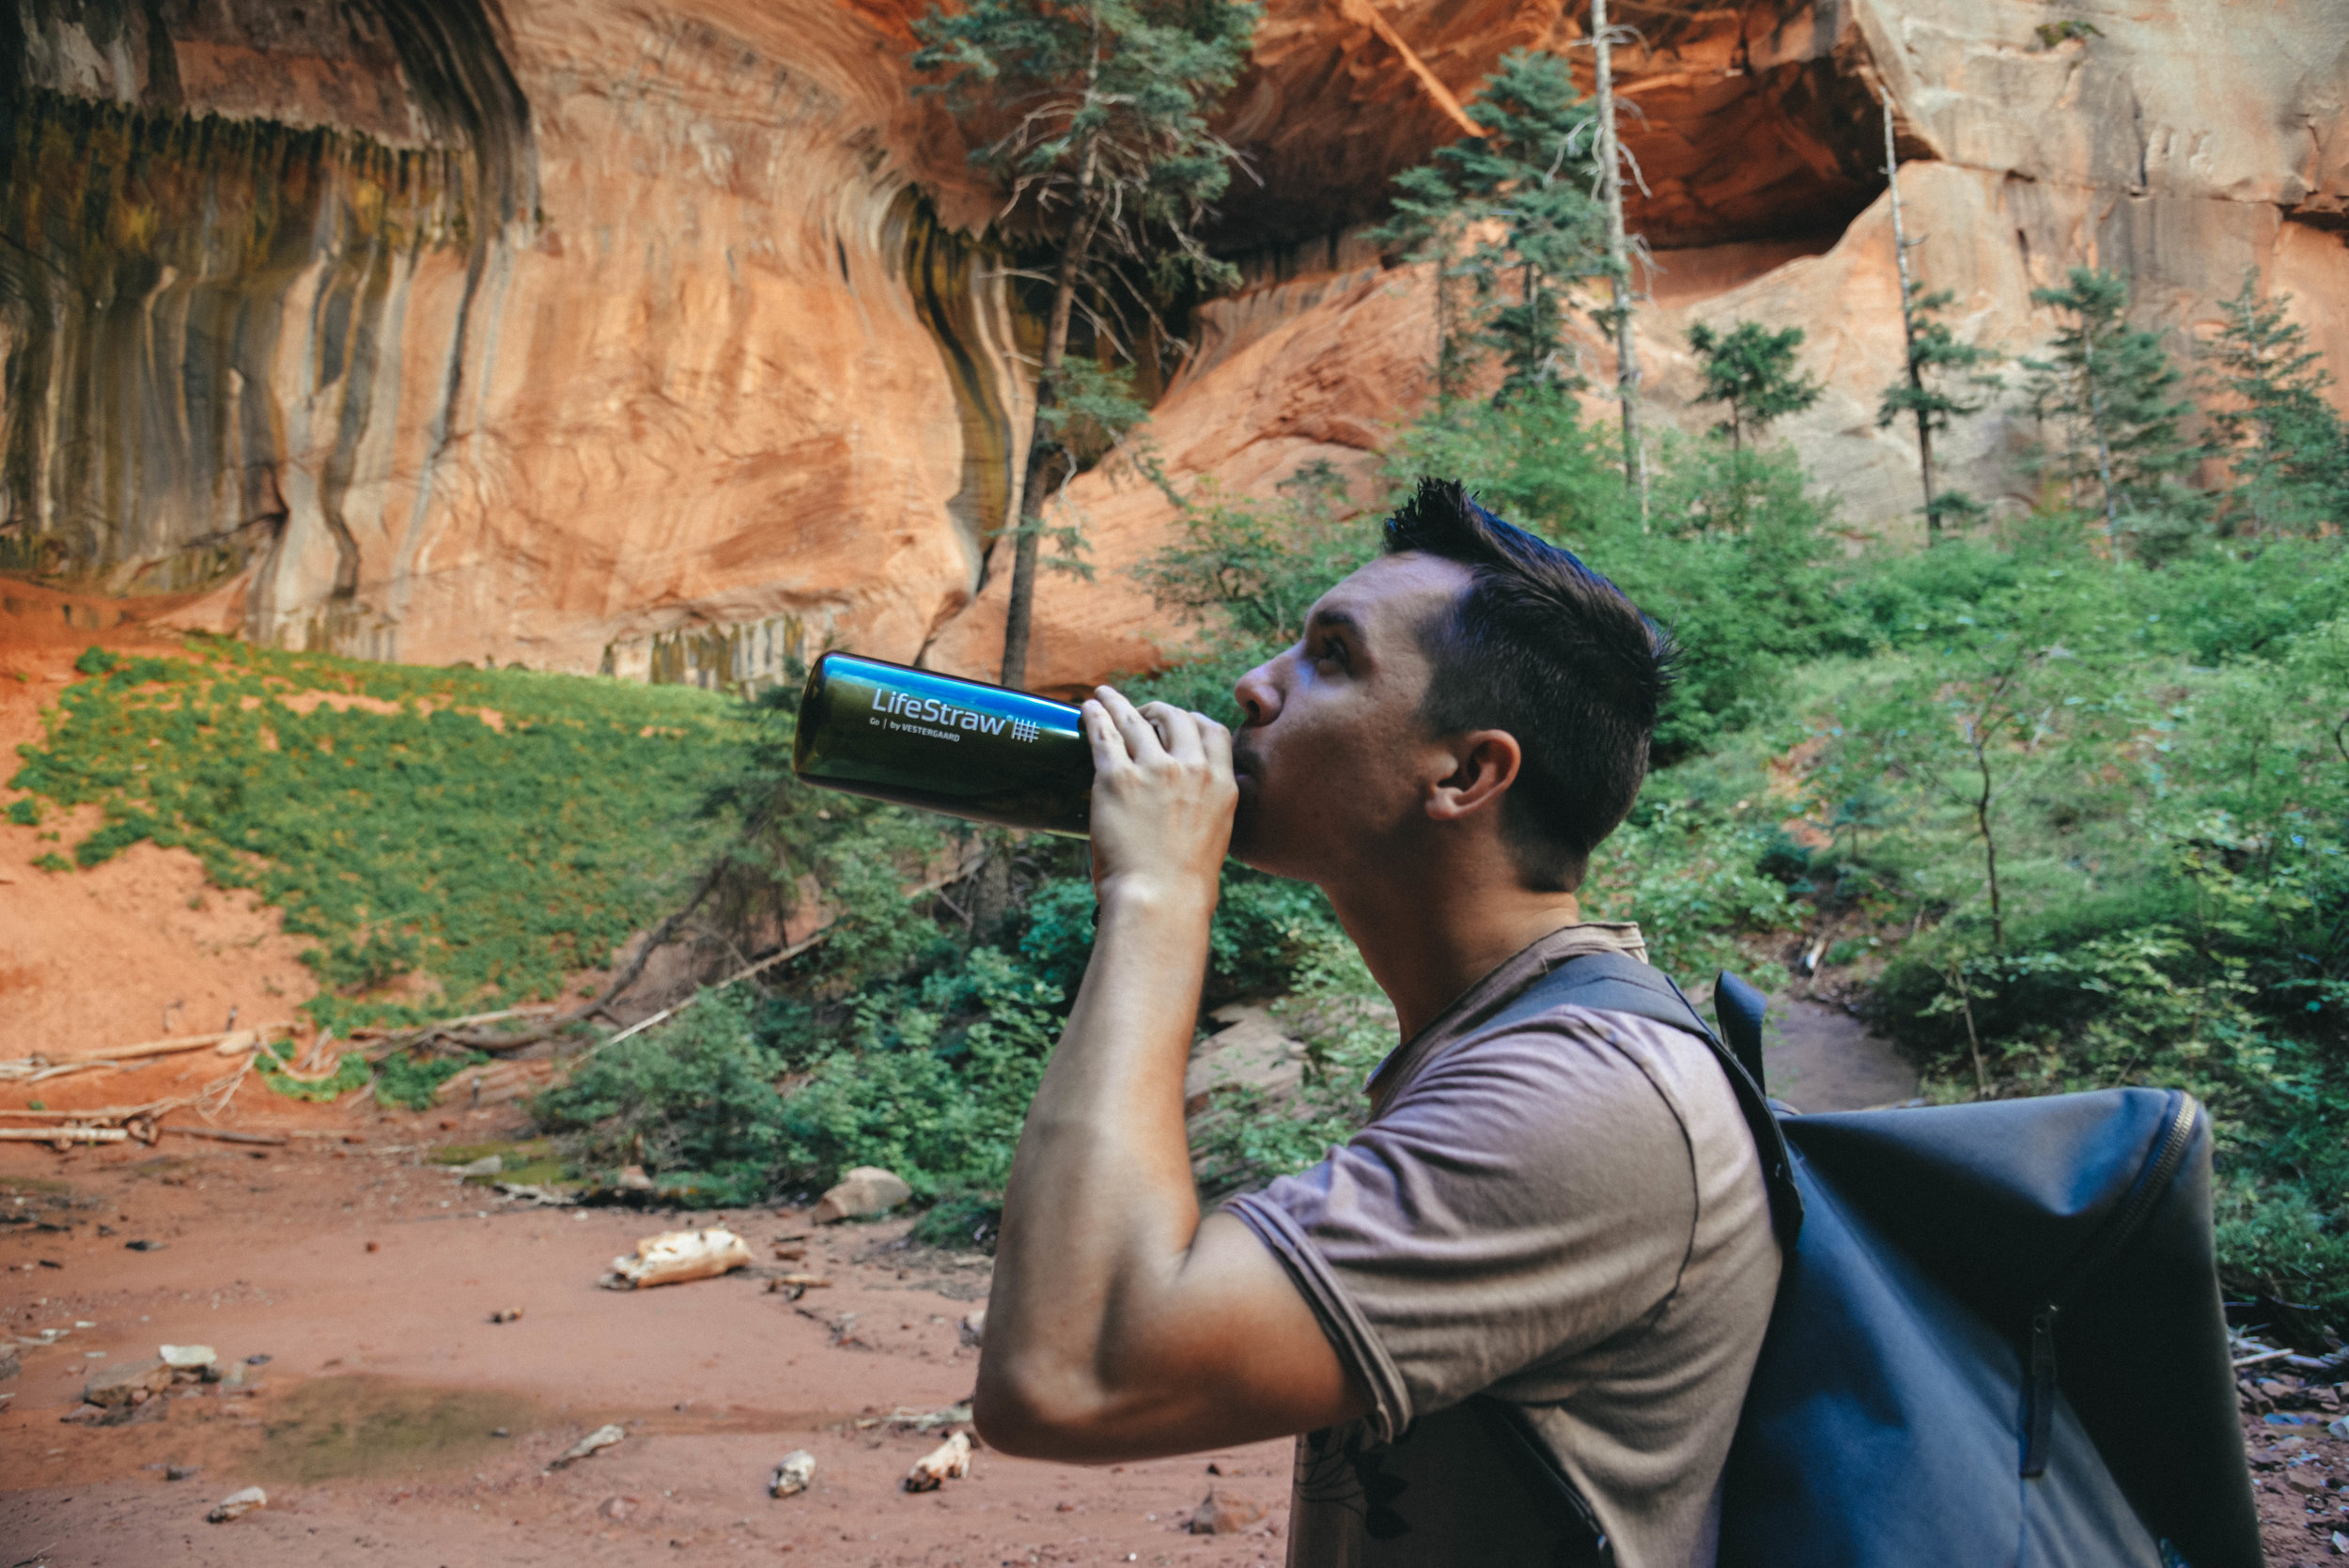 Jimmy drinking stream water from a LifeStraw at Zion National Park.